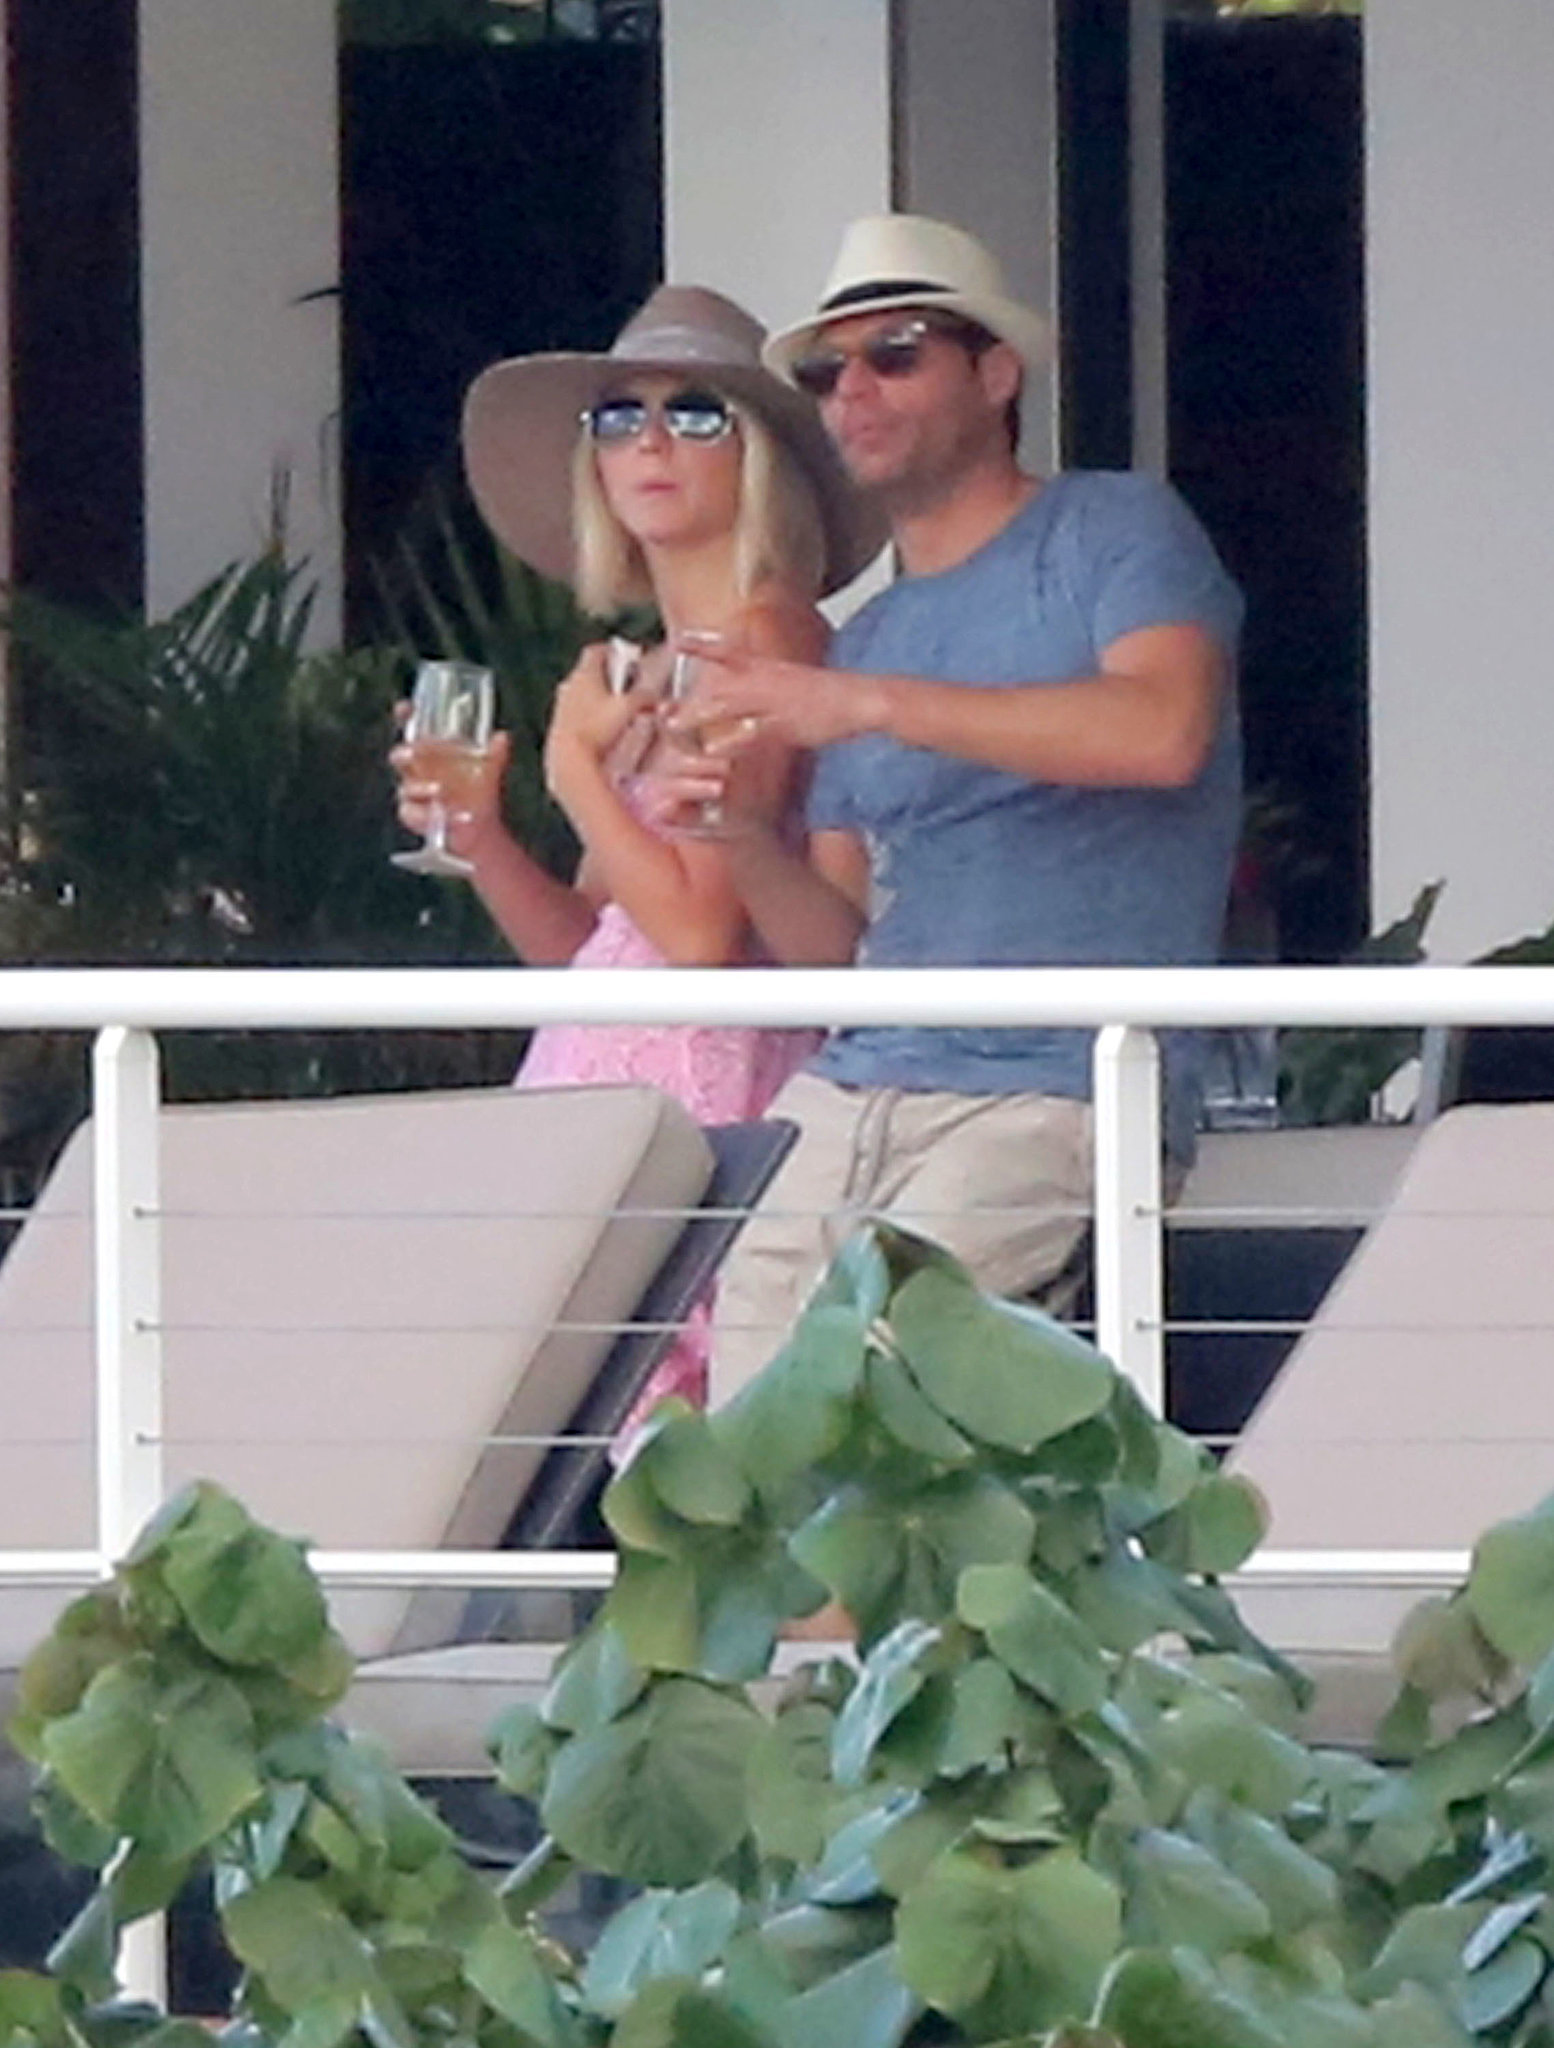 Julianne Hough and then-boyfriend Ryan Seacrest vacationed together in St. Barts during a January 2013 getaway.